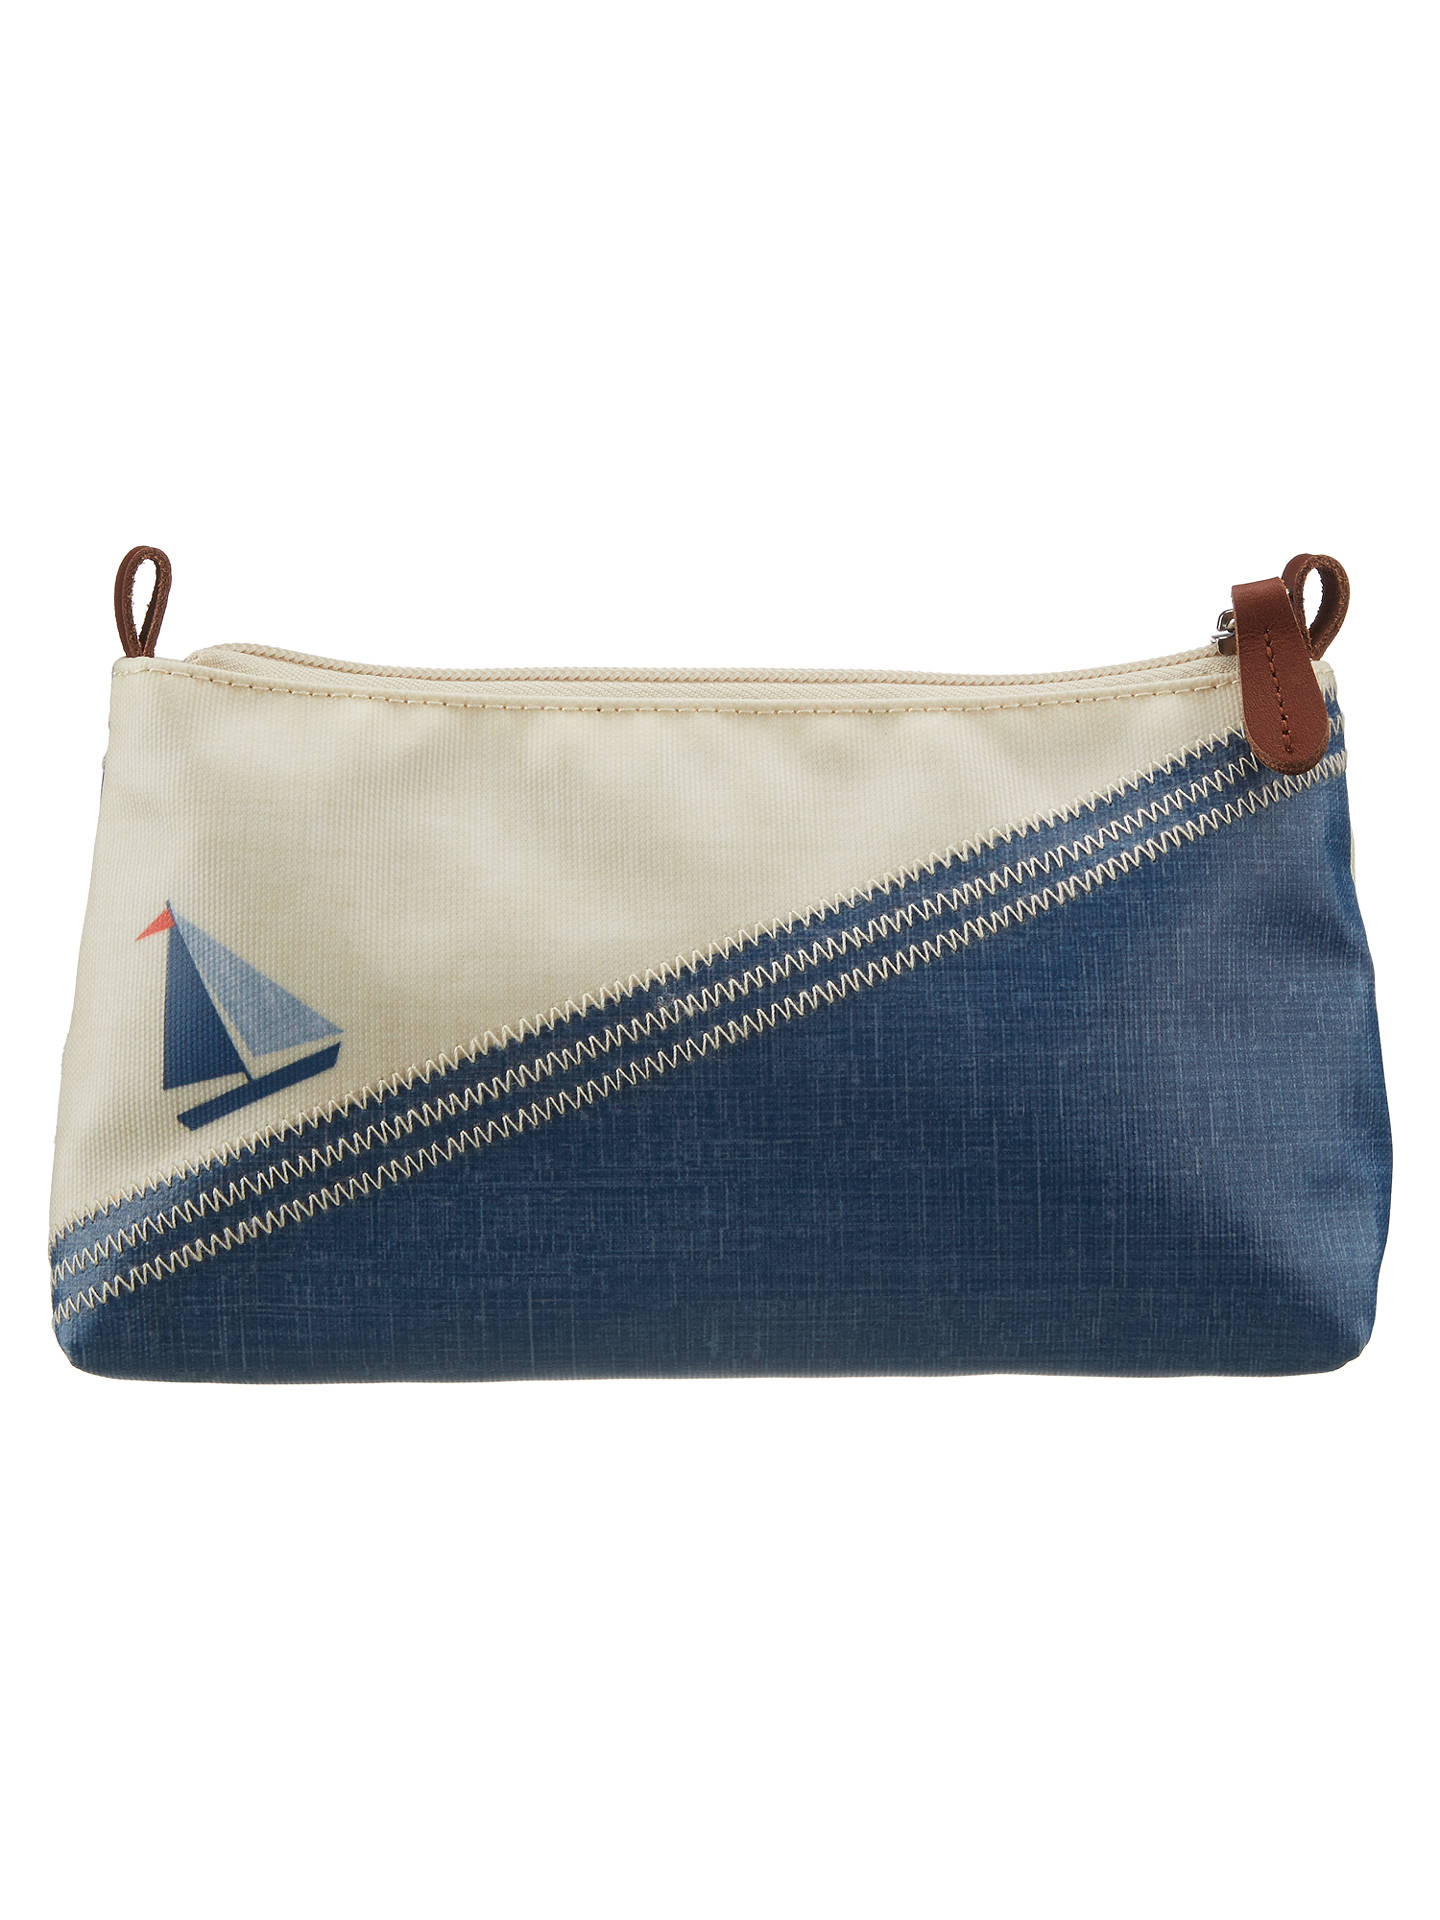 BuyJohn Lewis Coastal Pencil Case, Large Online at johnlewis.com